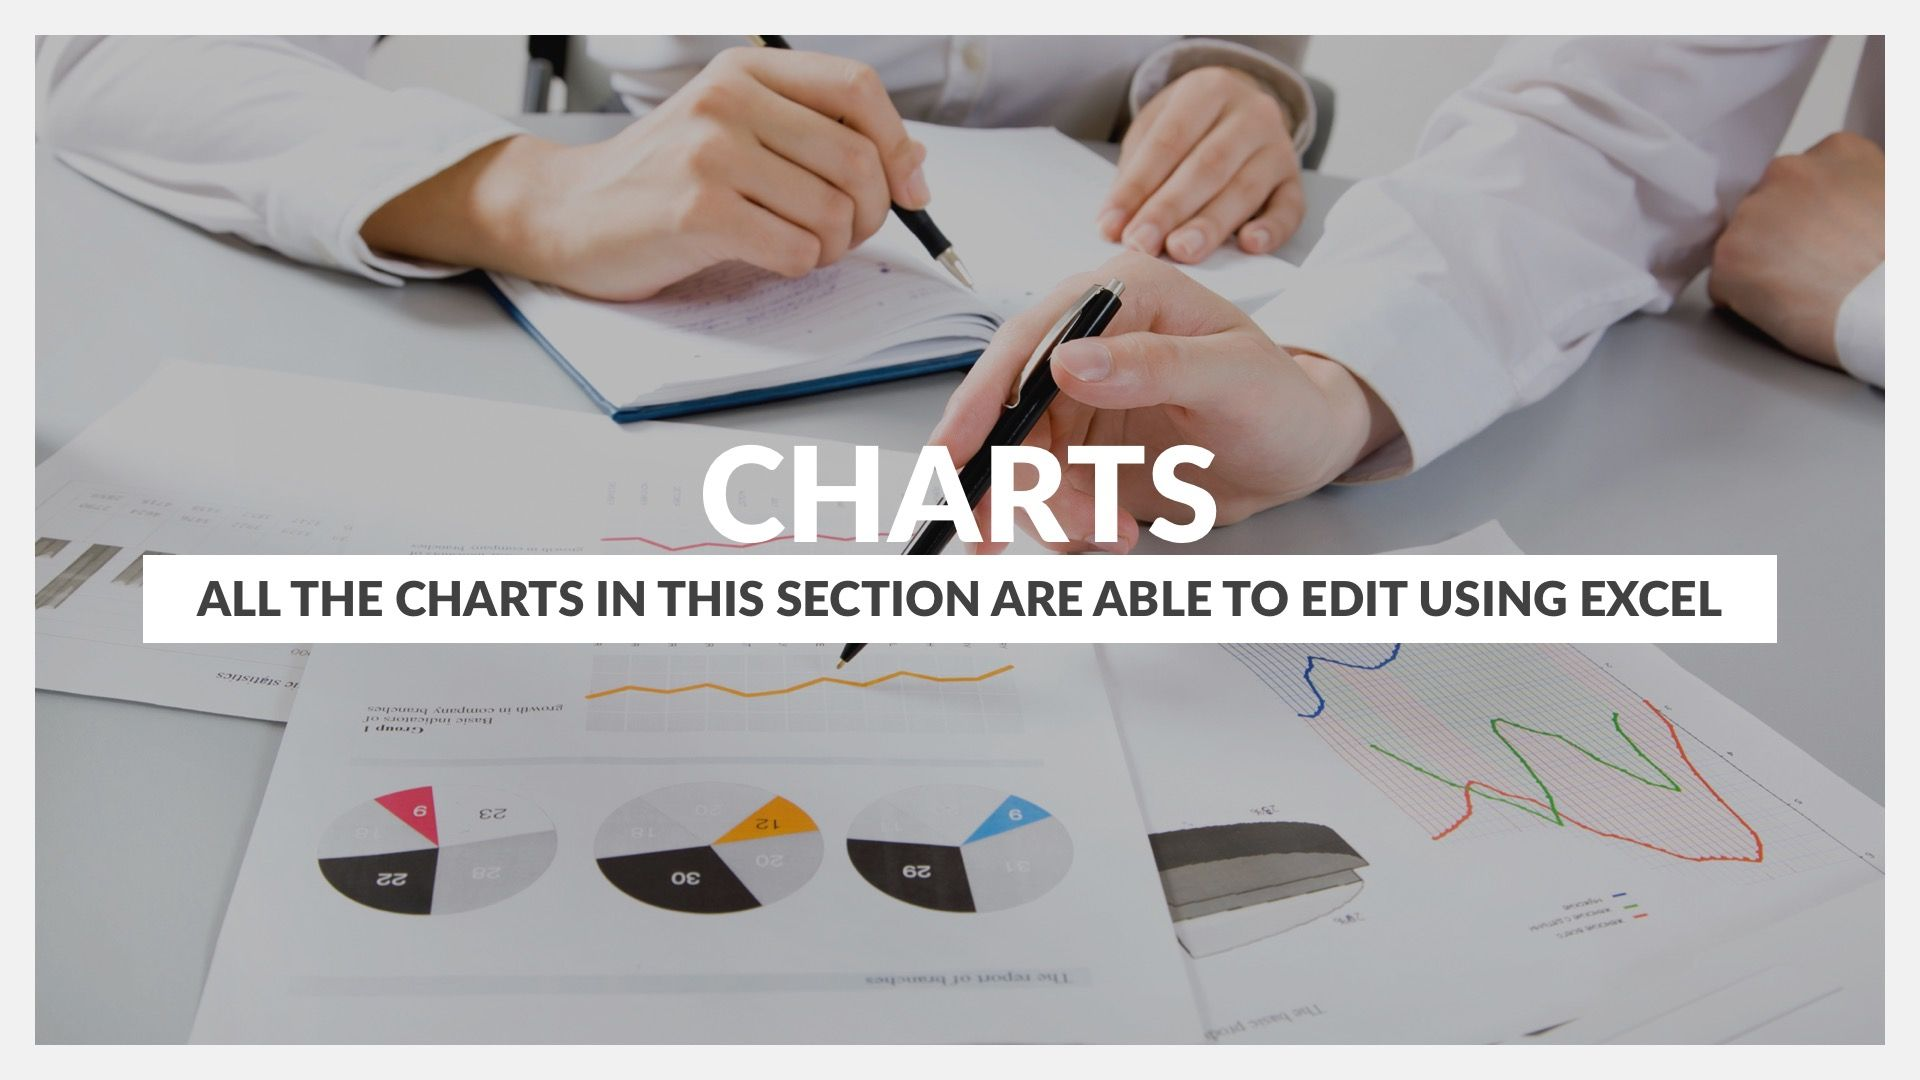 Charts and Data Driven PPT Pitch Deck #advert, #advertisement